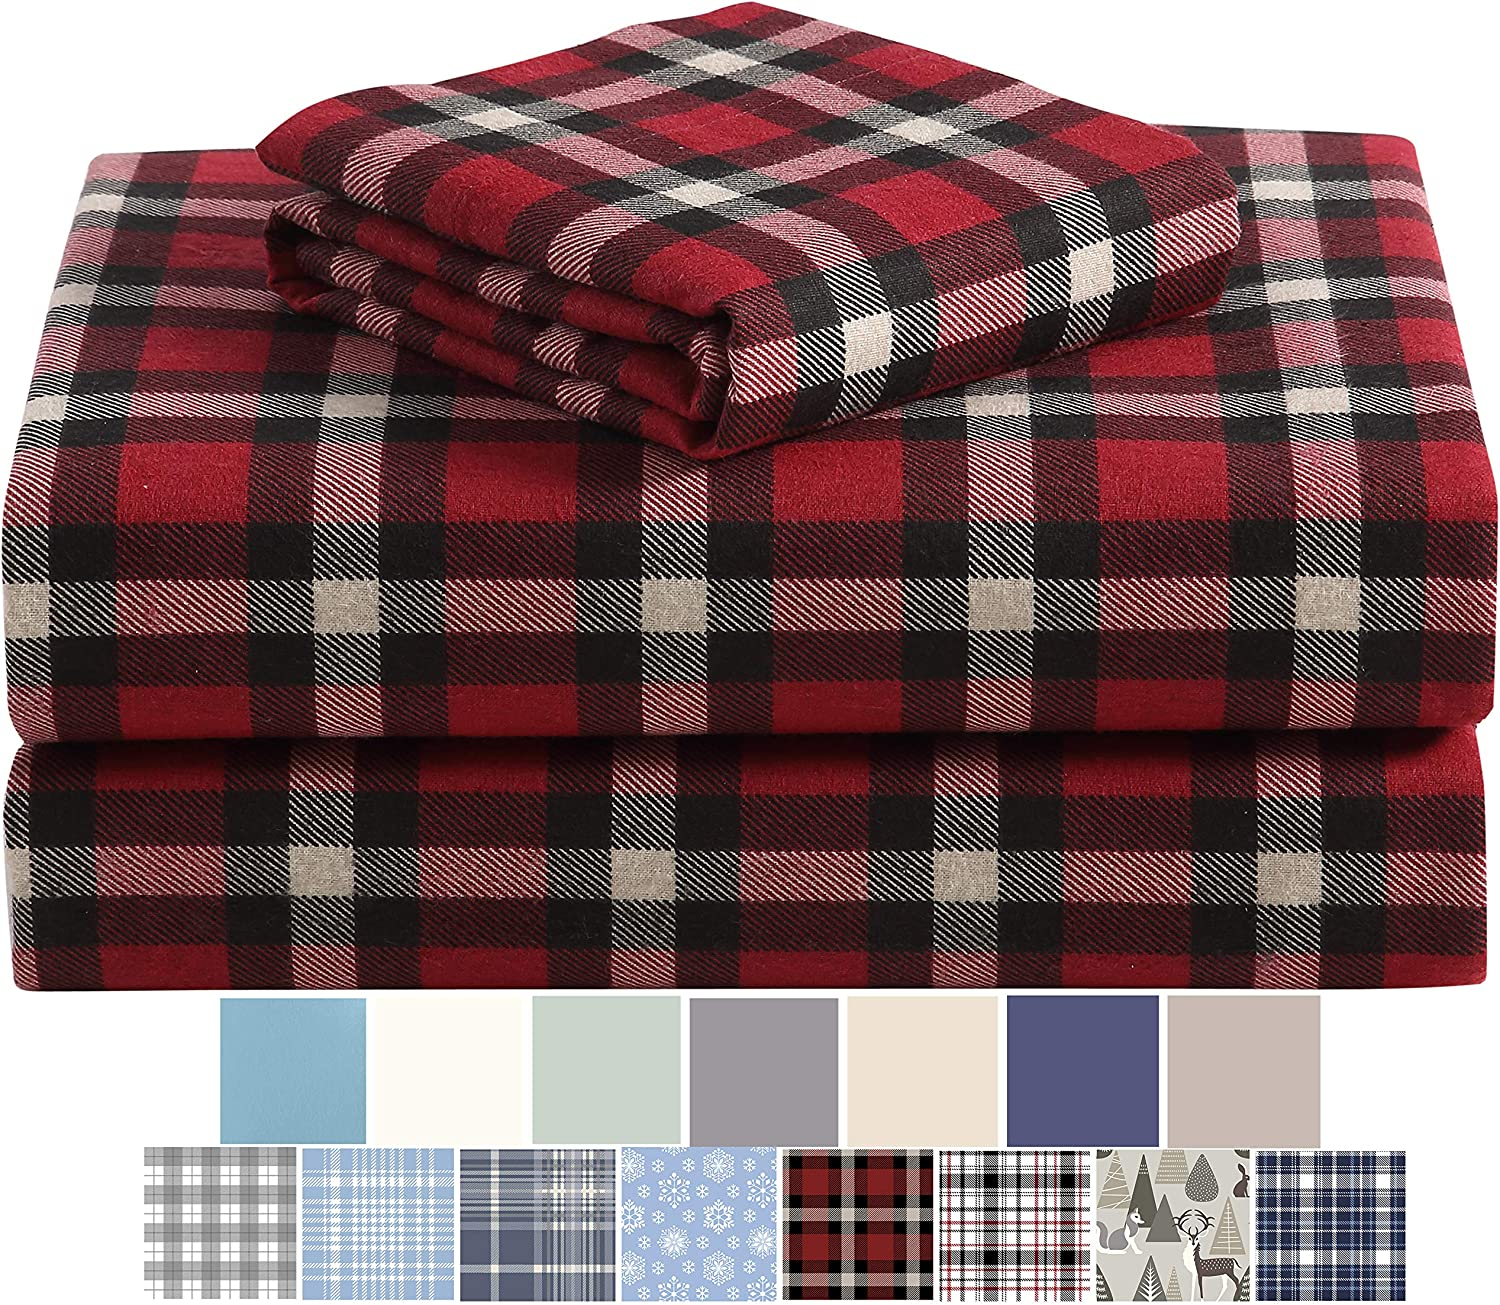 Morgan Home Cotton Turkish Flannel Sheets 100% Brushed Cotton for Supreme Comfort - Deep Pockets - Warm and Cozy, Great for All Seasons (Dover Plaid Red, Twin)